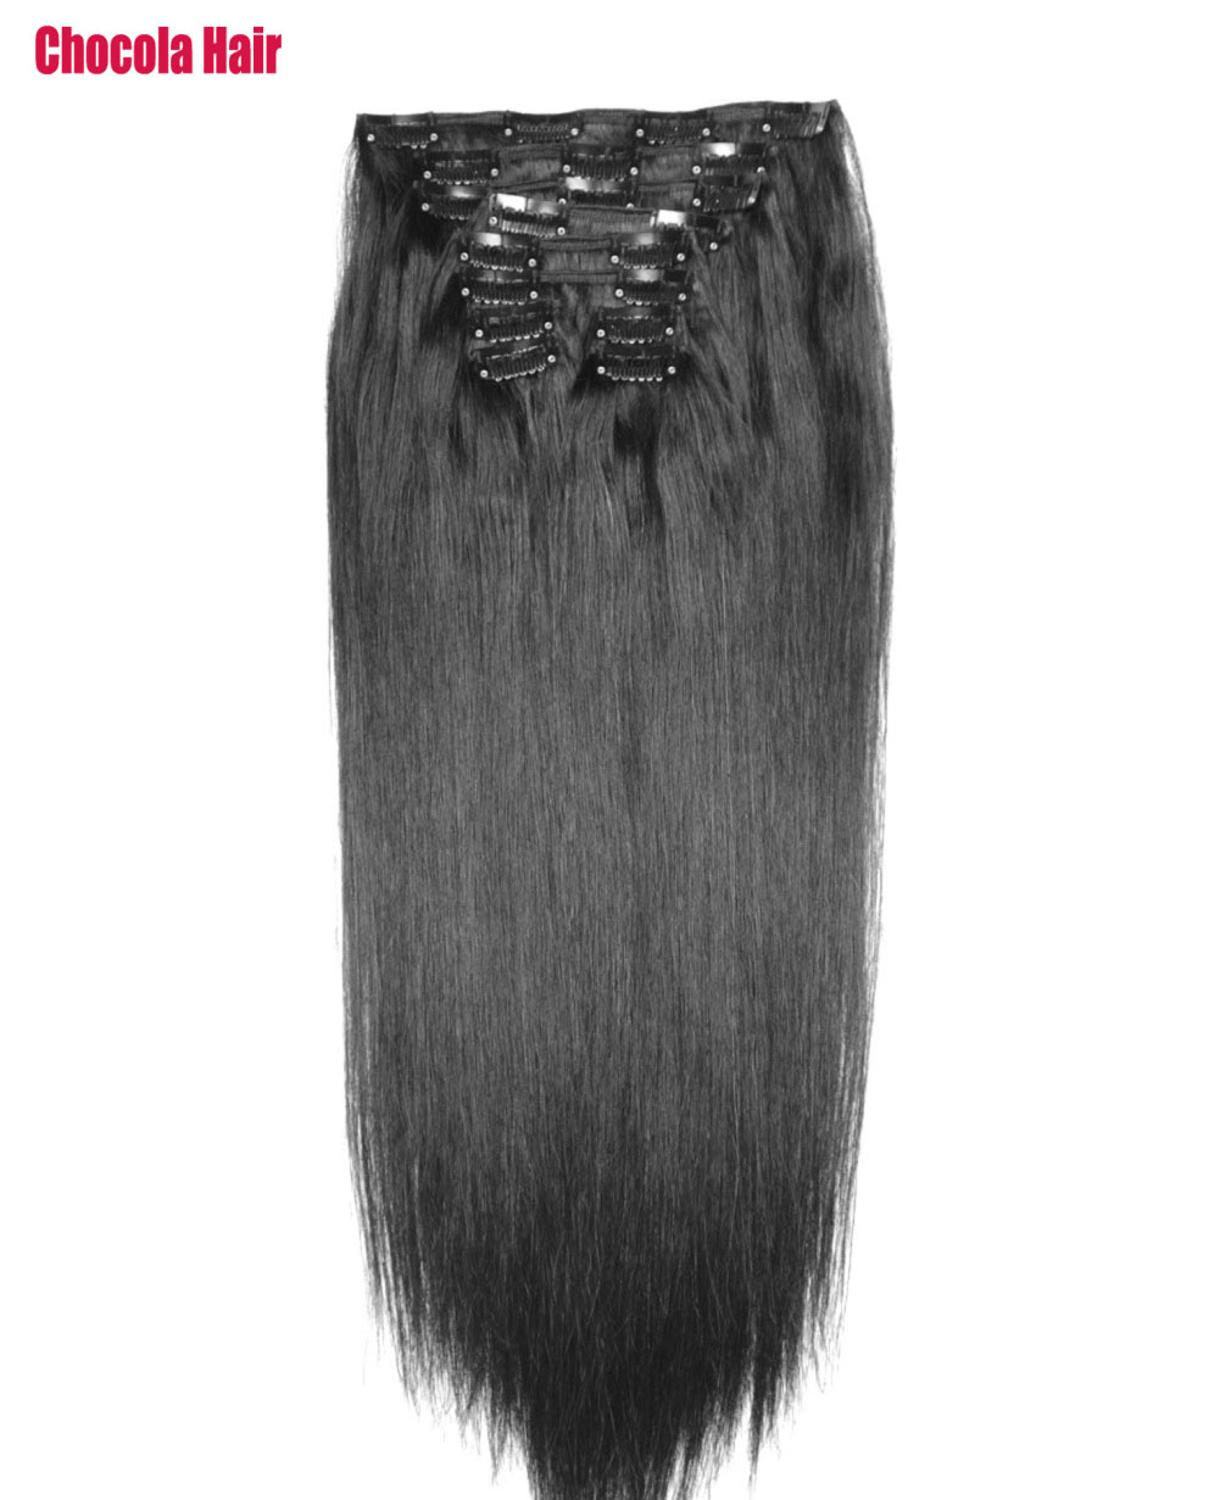 Human-Hair-Extensions Clip-In Natural Remy-Hair Straight Brazilian Set 260g 10pcs 16-28-Machine-Made title=